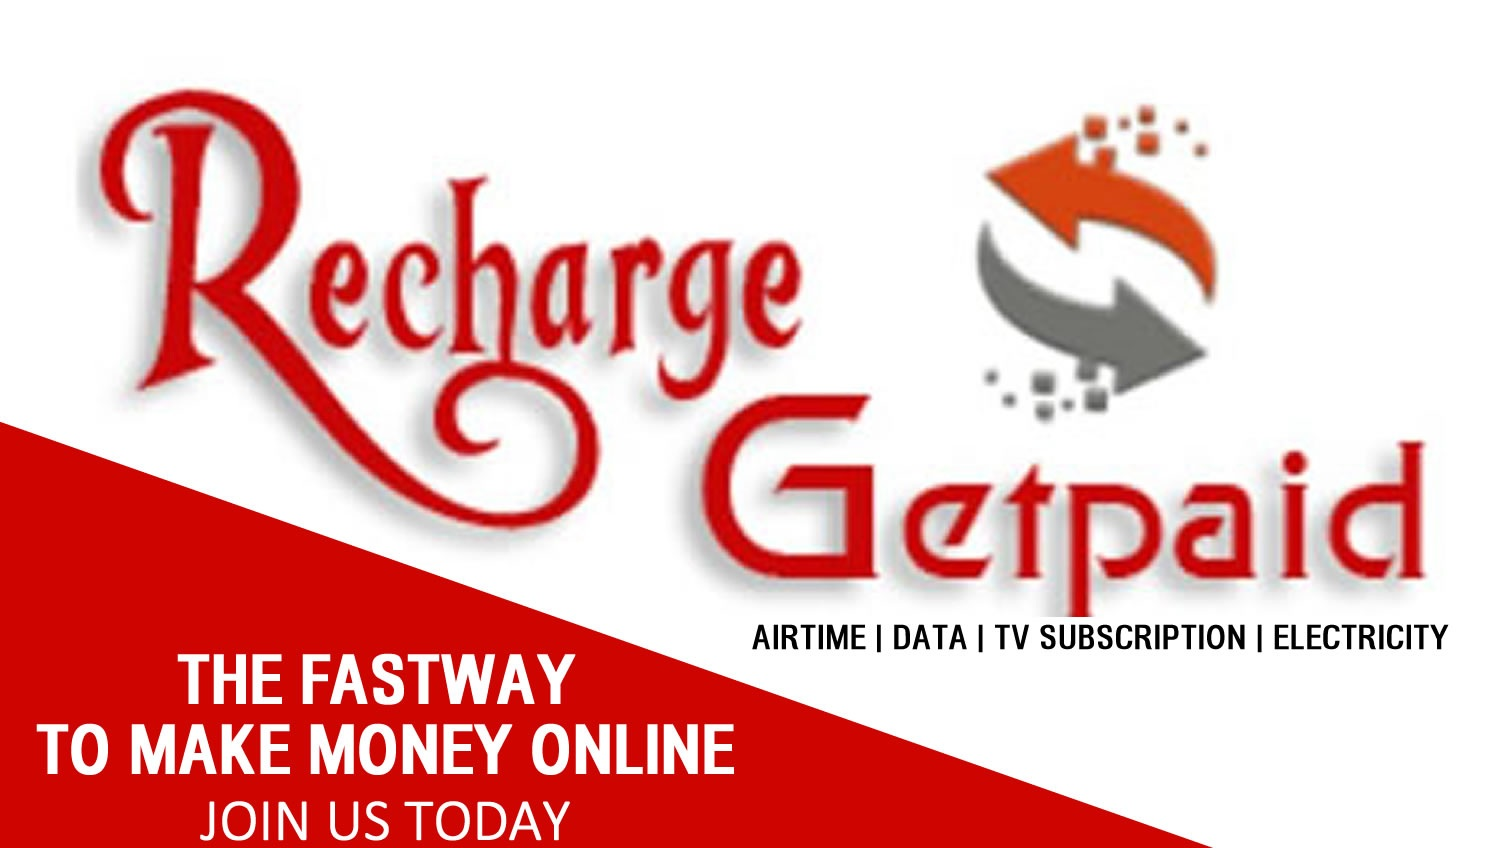 How recharge and get Paid works